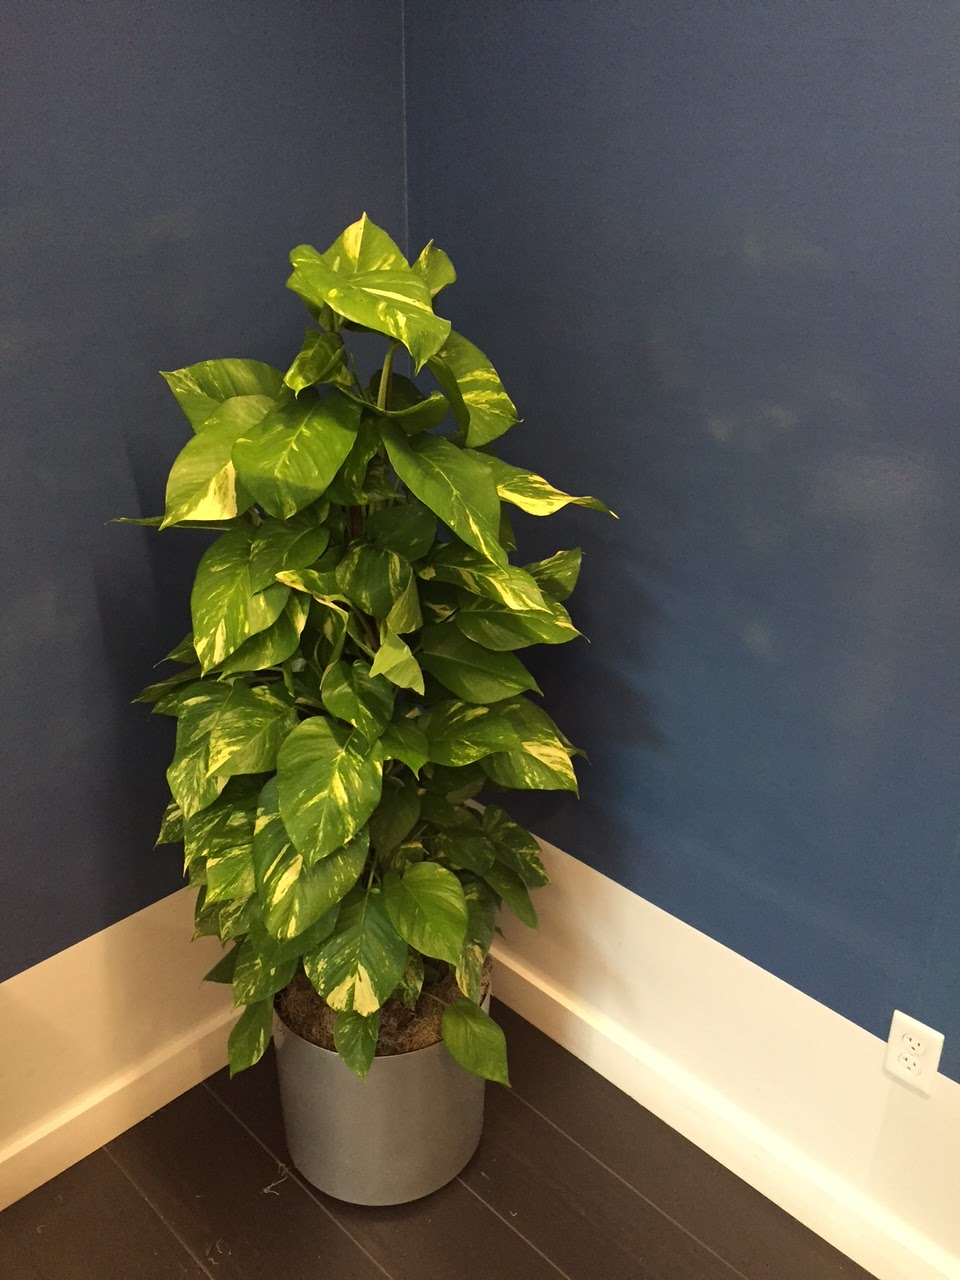 Merveilleux Needham Natall Narrow Totem Pothos;inside Green Plant Design Pricing;indoor  Plant Care;